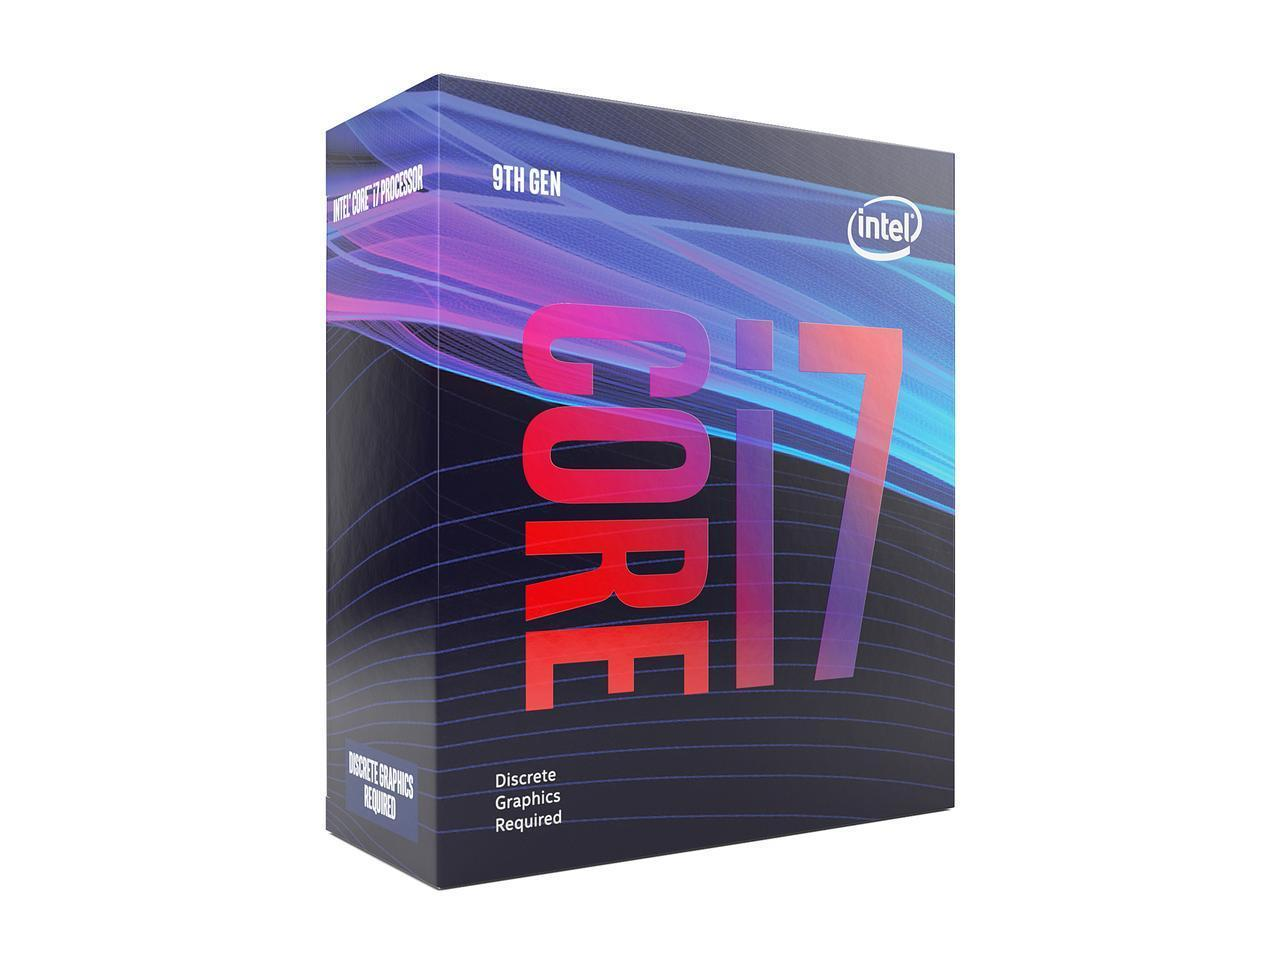 Процесор Intel Coffee Lake Core i7-9700F 3.00GHz (up to 4.70GHz), 12MB, 65W,  LGA1151 (300 Series)-2